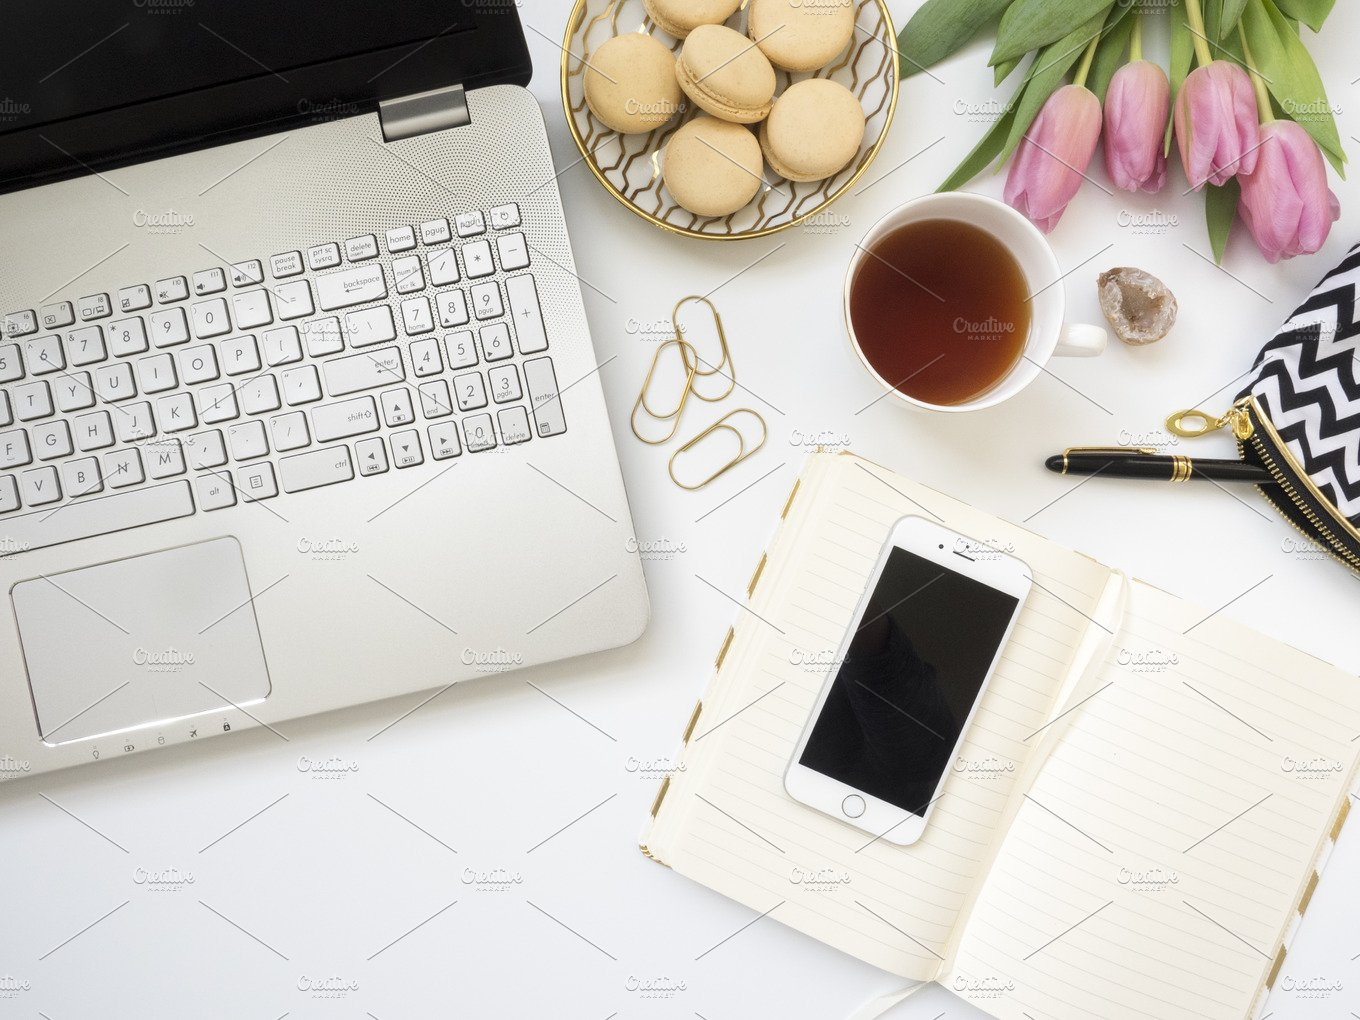 Modern Flat Lay Styled Desk Mock Up Business Photos